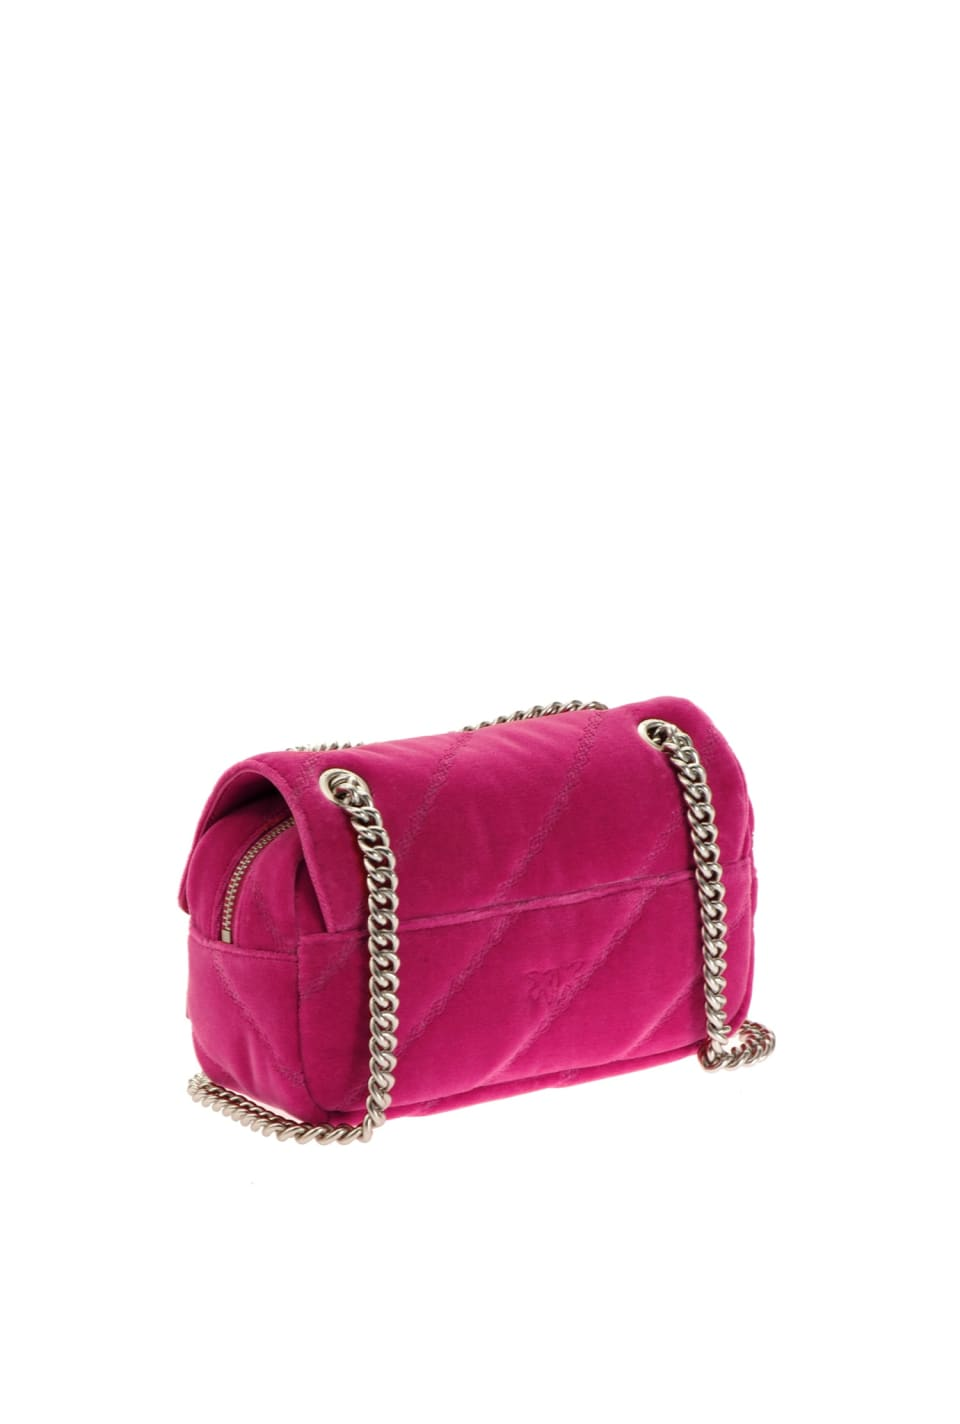 Mini Love Bag Puff Maxi Quilt in velvet - Pinko